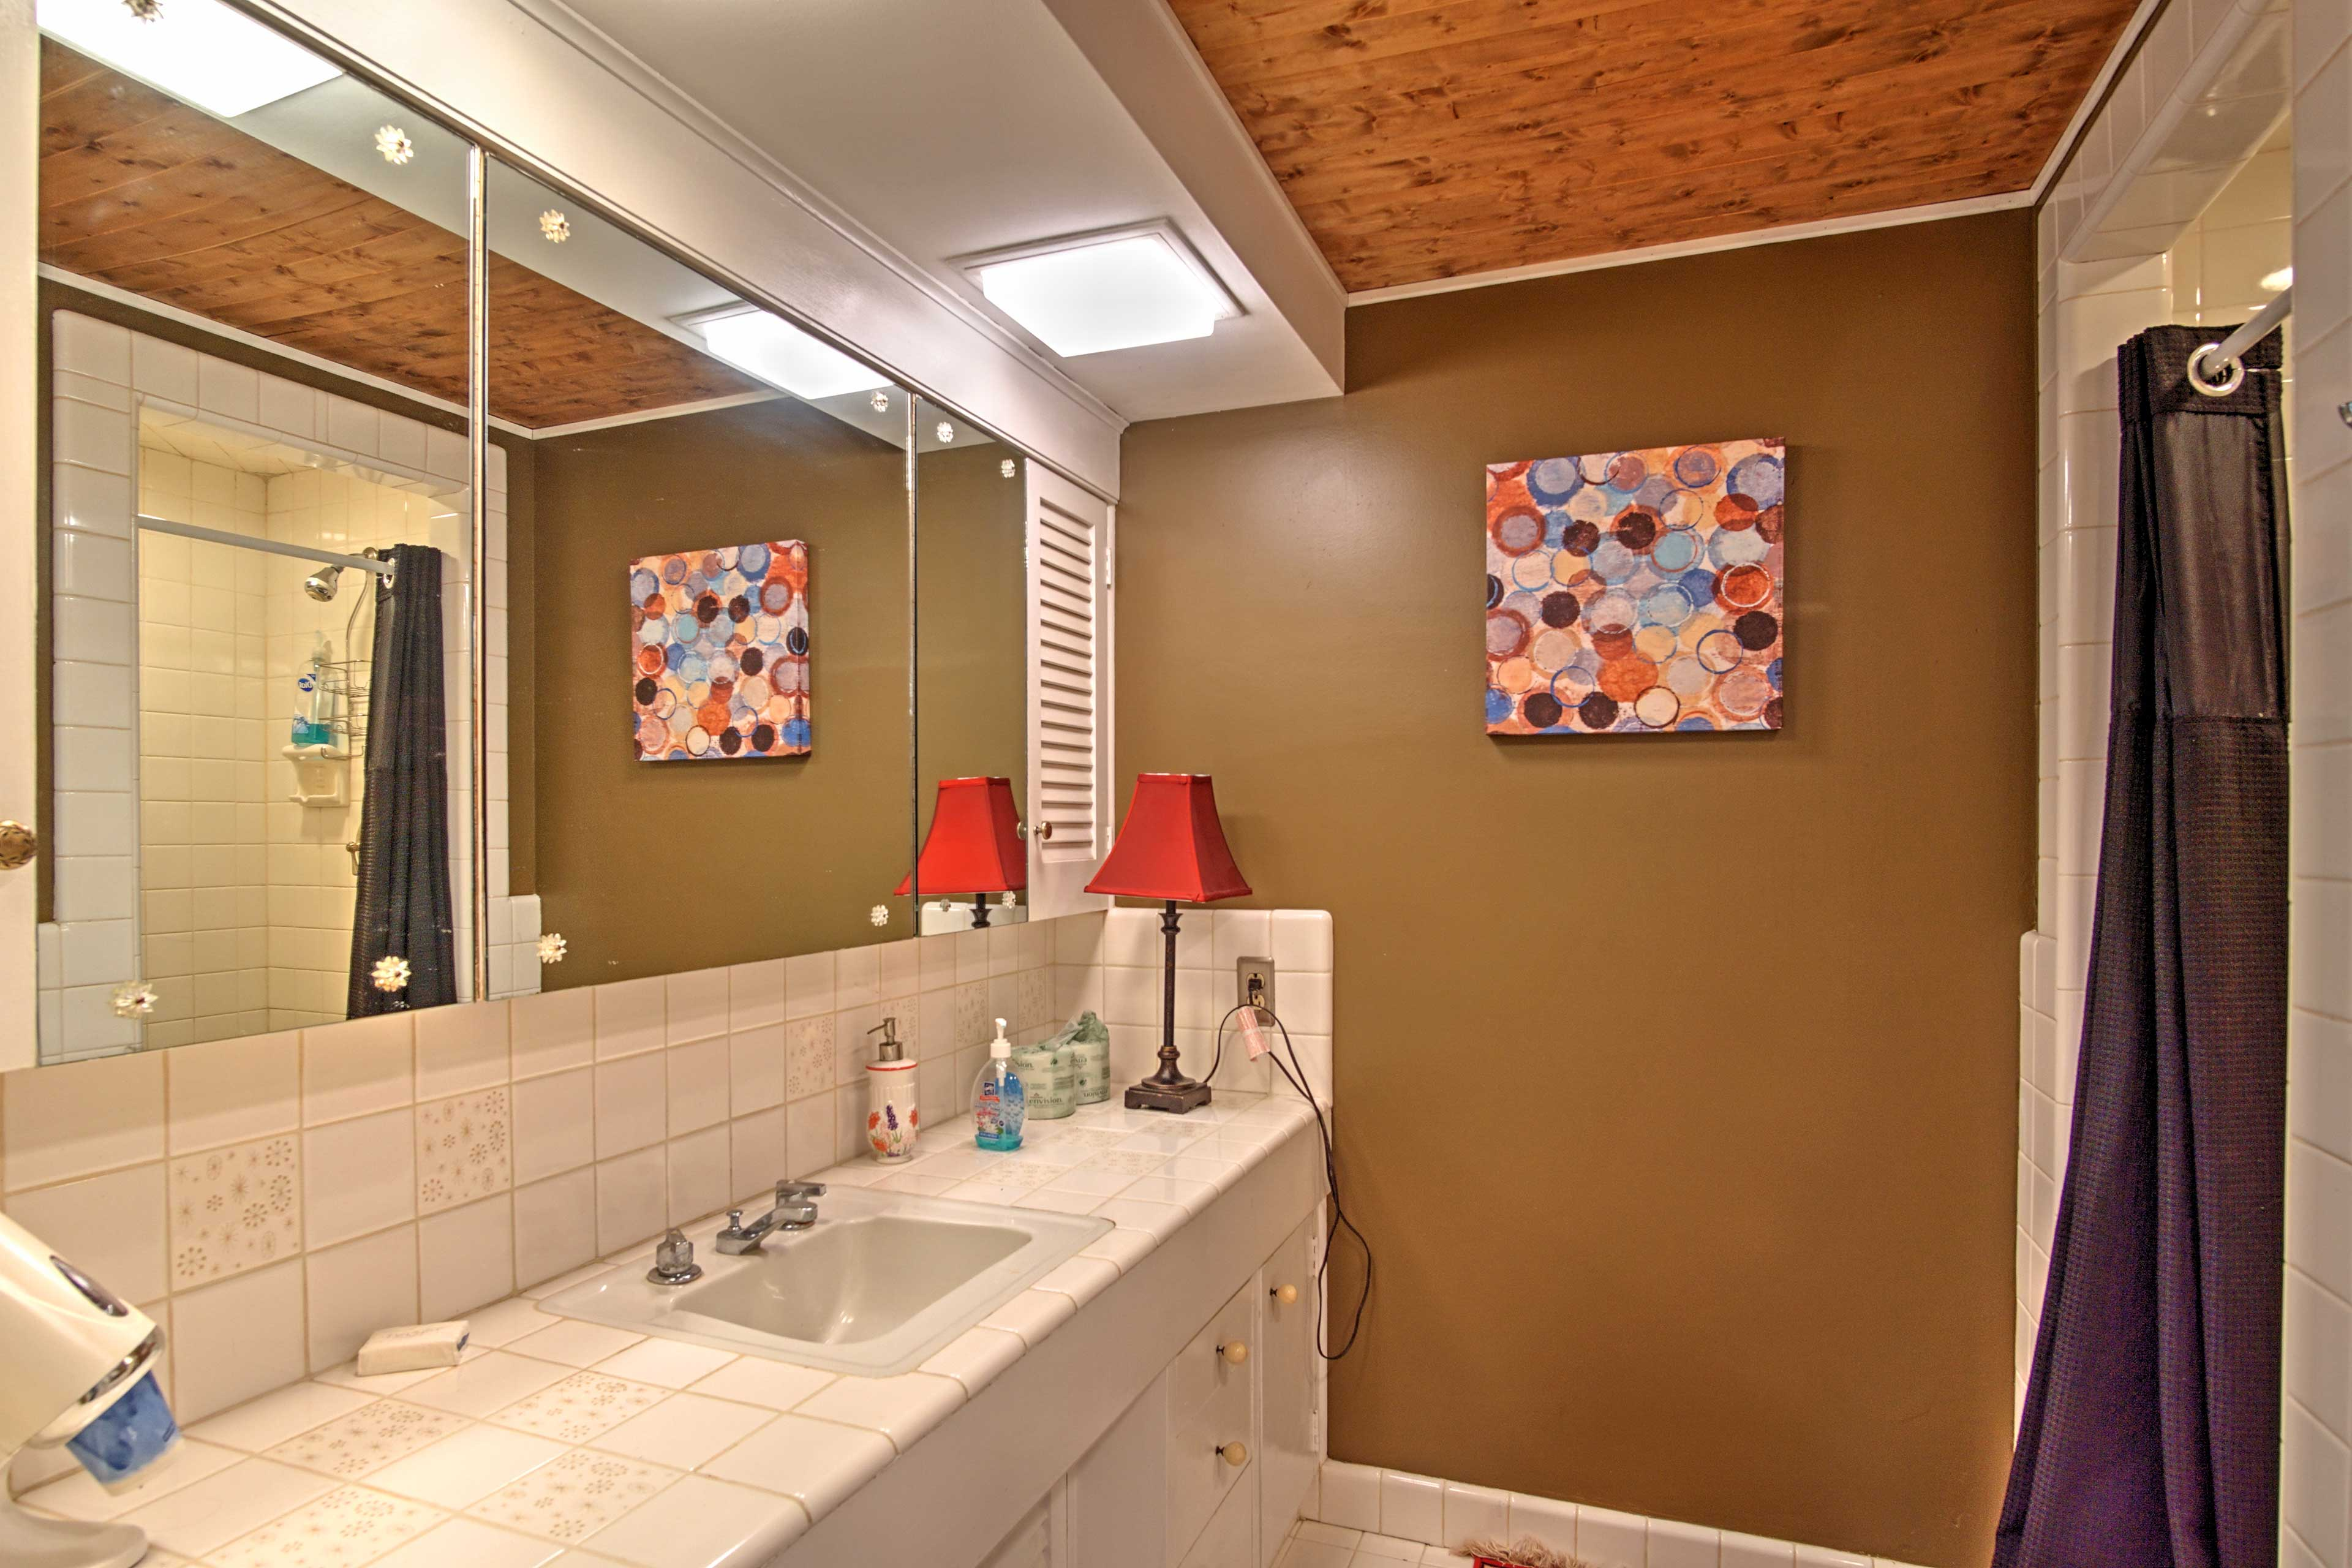 There are 3.5 bathrooms in this home.